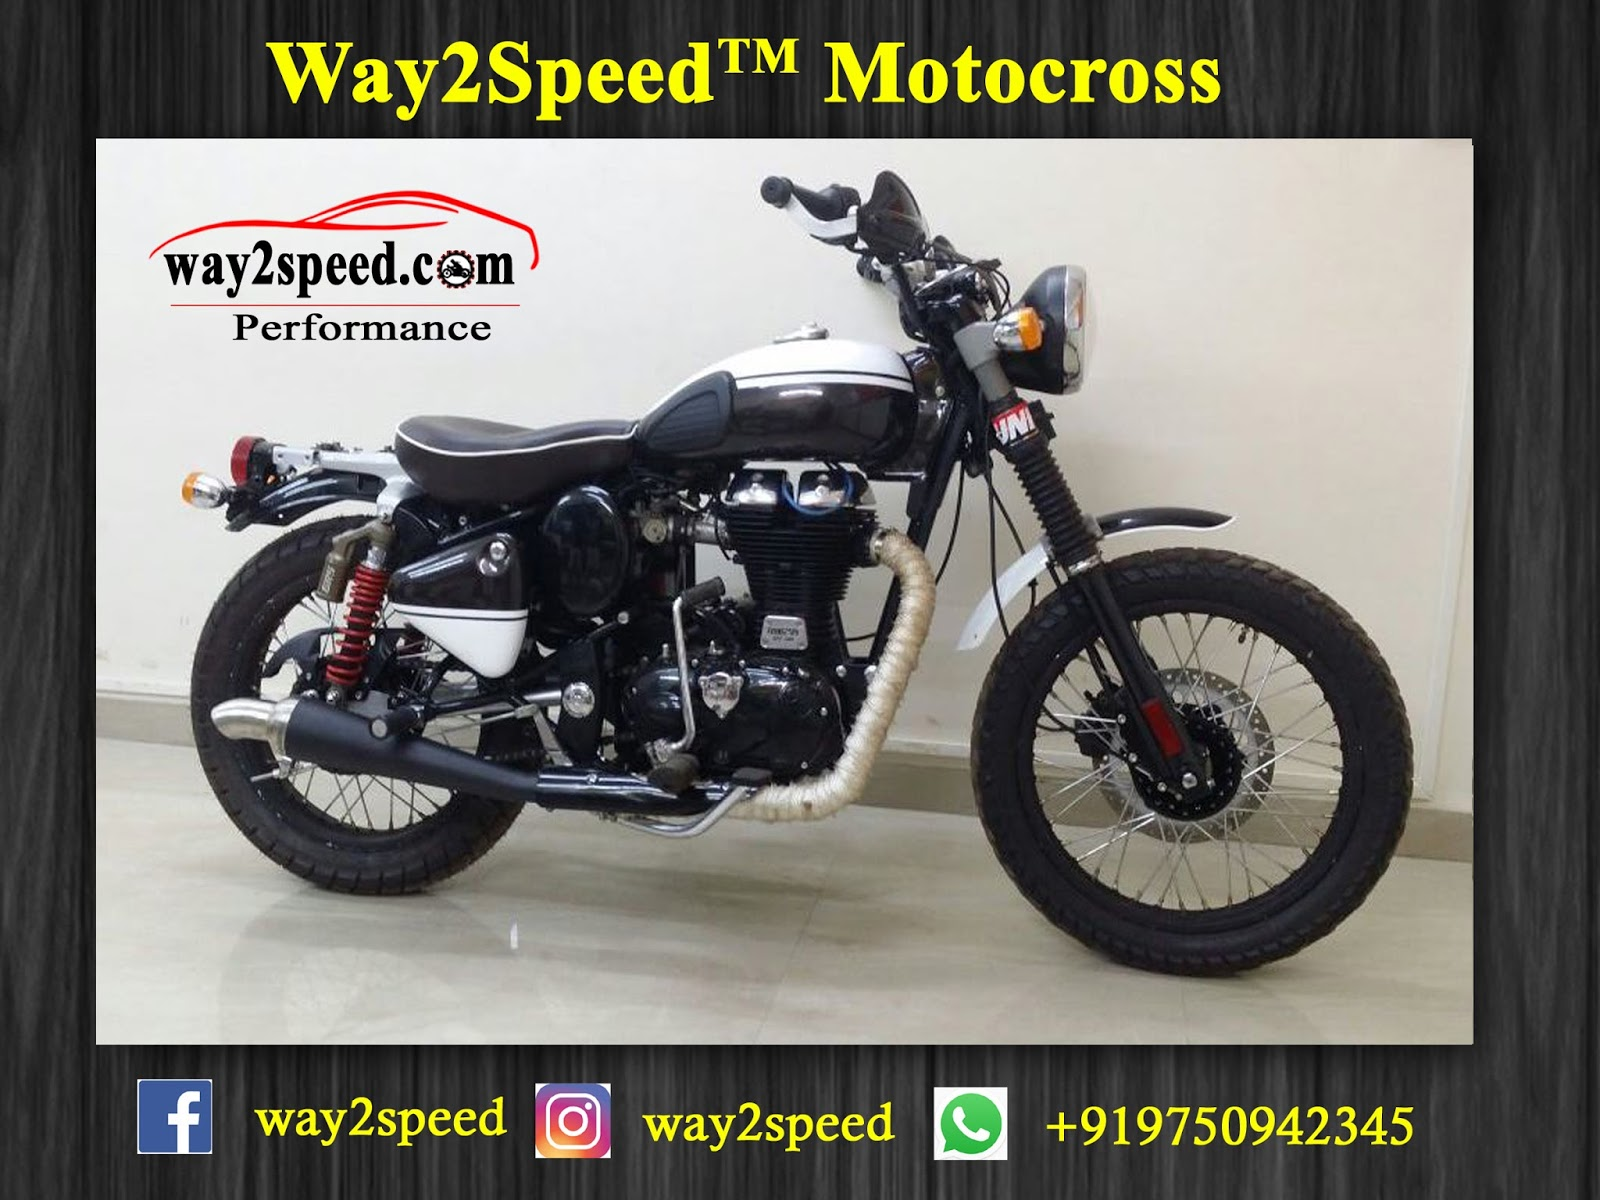 Royal Enfield Silencer | Way2speed Motocross is a direct fit for Royal Enfield Bullet 350, Royal Enfield Classic 350, Royal Enfield Thunderbird 350, Royal Enfield Bullet 500, Royal Enfield Classic 500, Royal Enfield Thunderbird 500, Royal Enfield Continental GT.